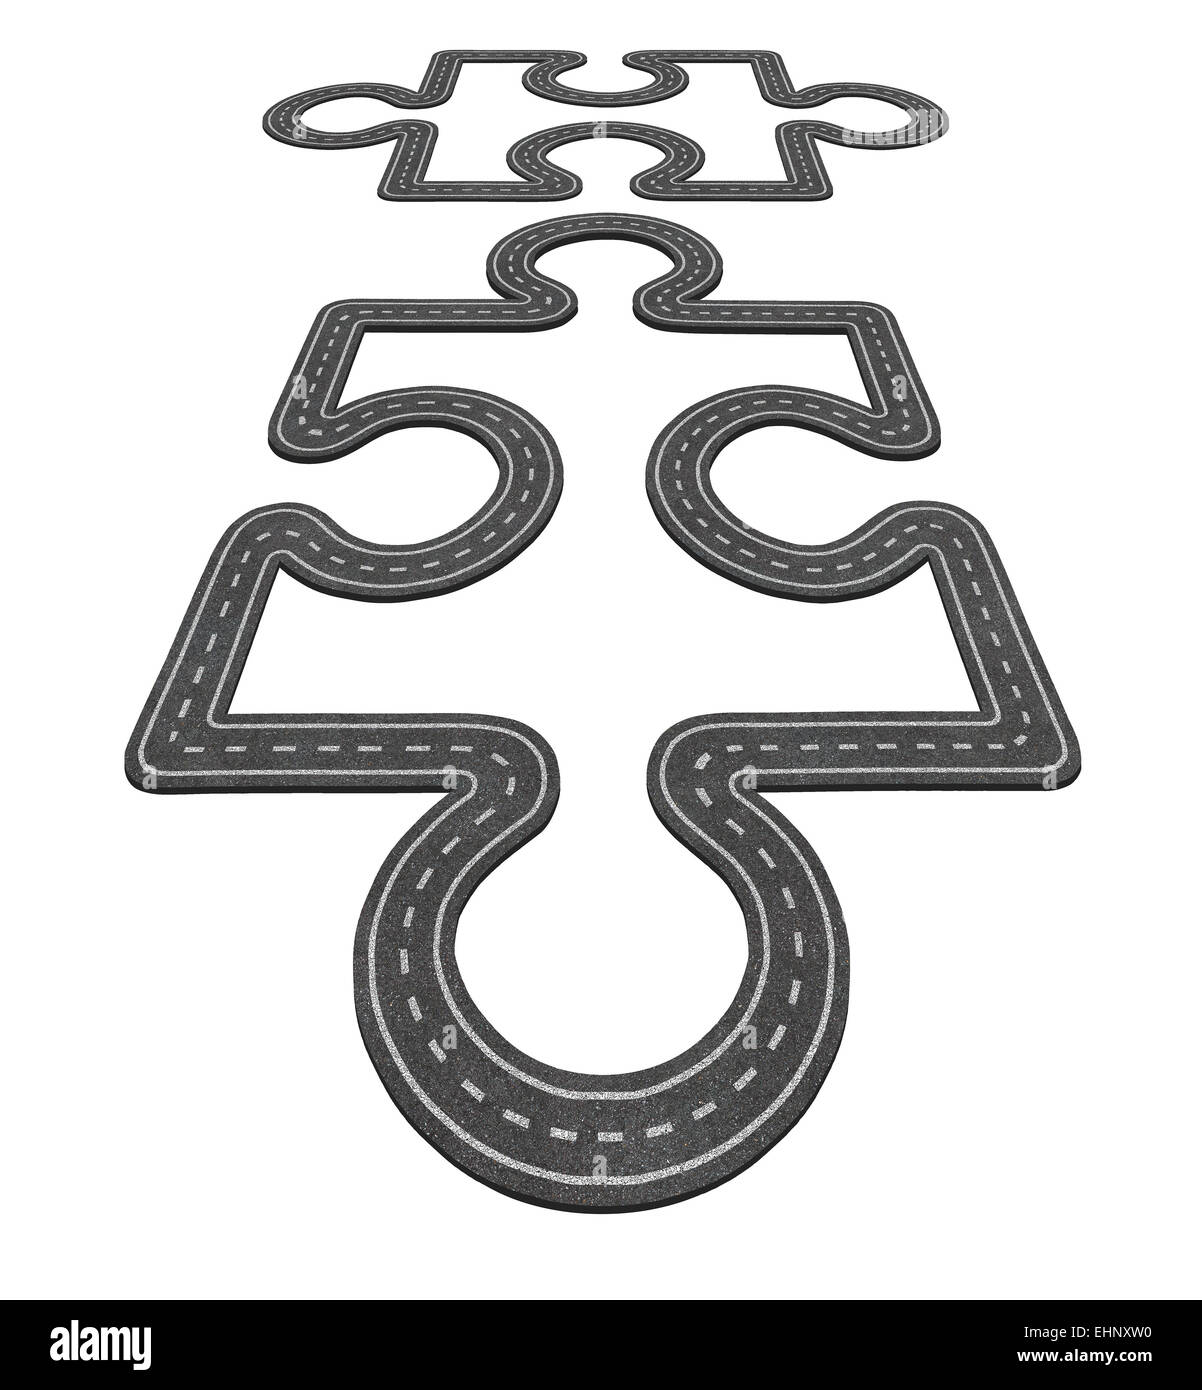 Road connection concept as two puzzle pieces merging together as a network transportation symbol and business icon - Stock Image